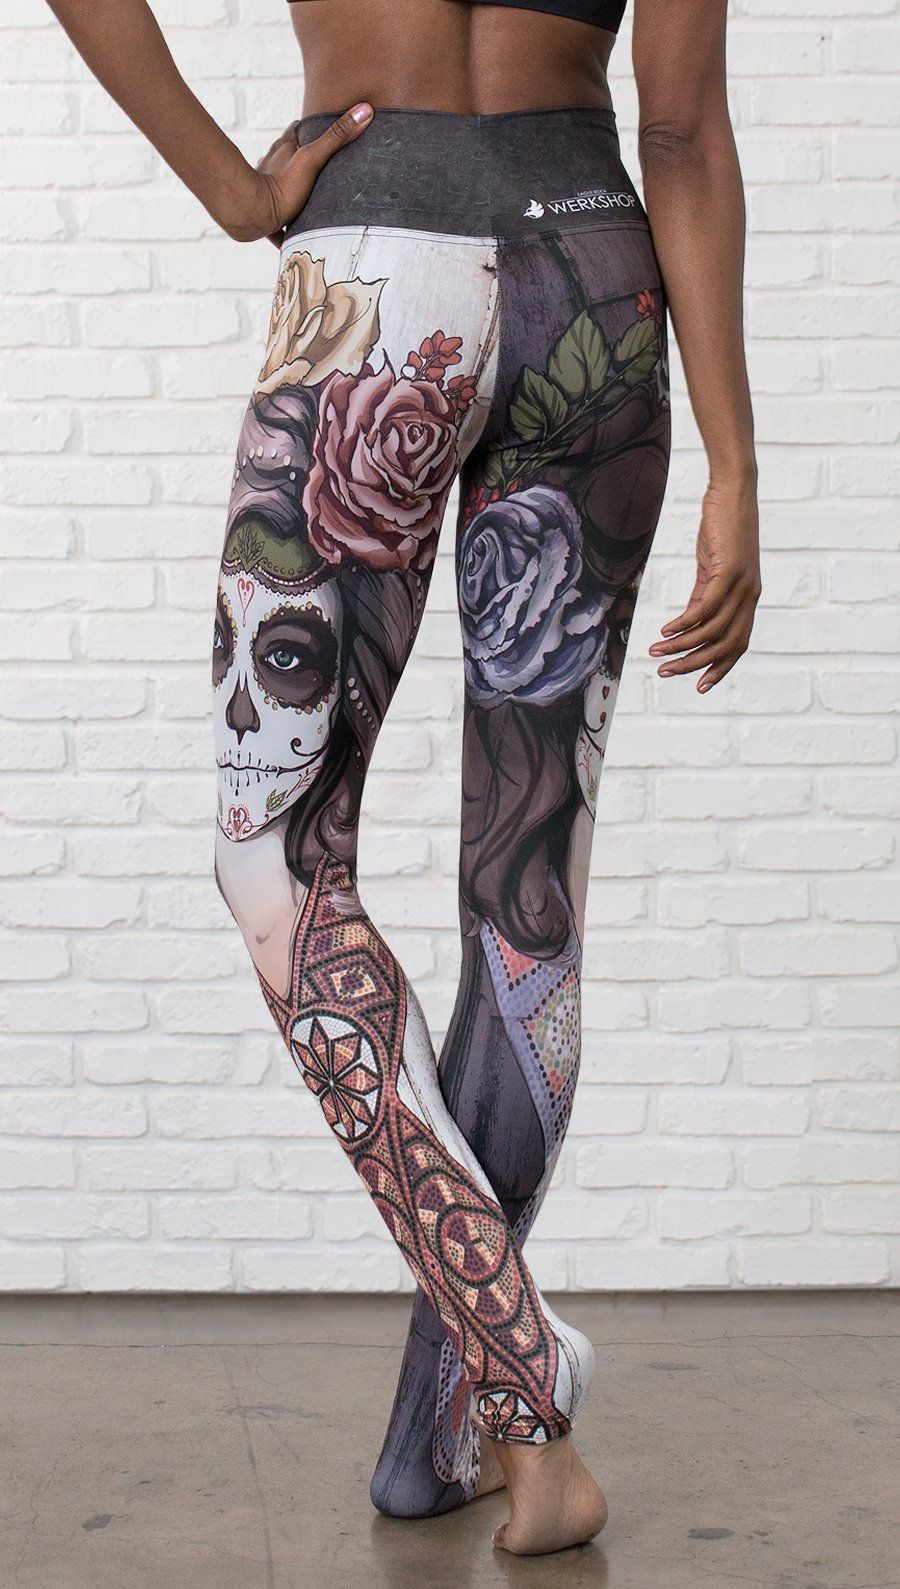 closeup front view of model wearing mashup Sugar Skull and Dia De Los Muertos themed printed full length leggings